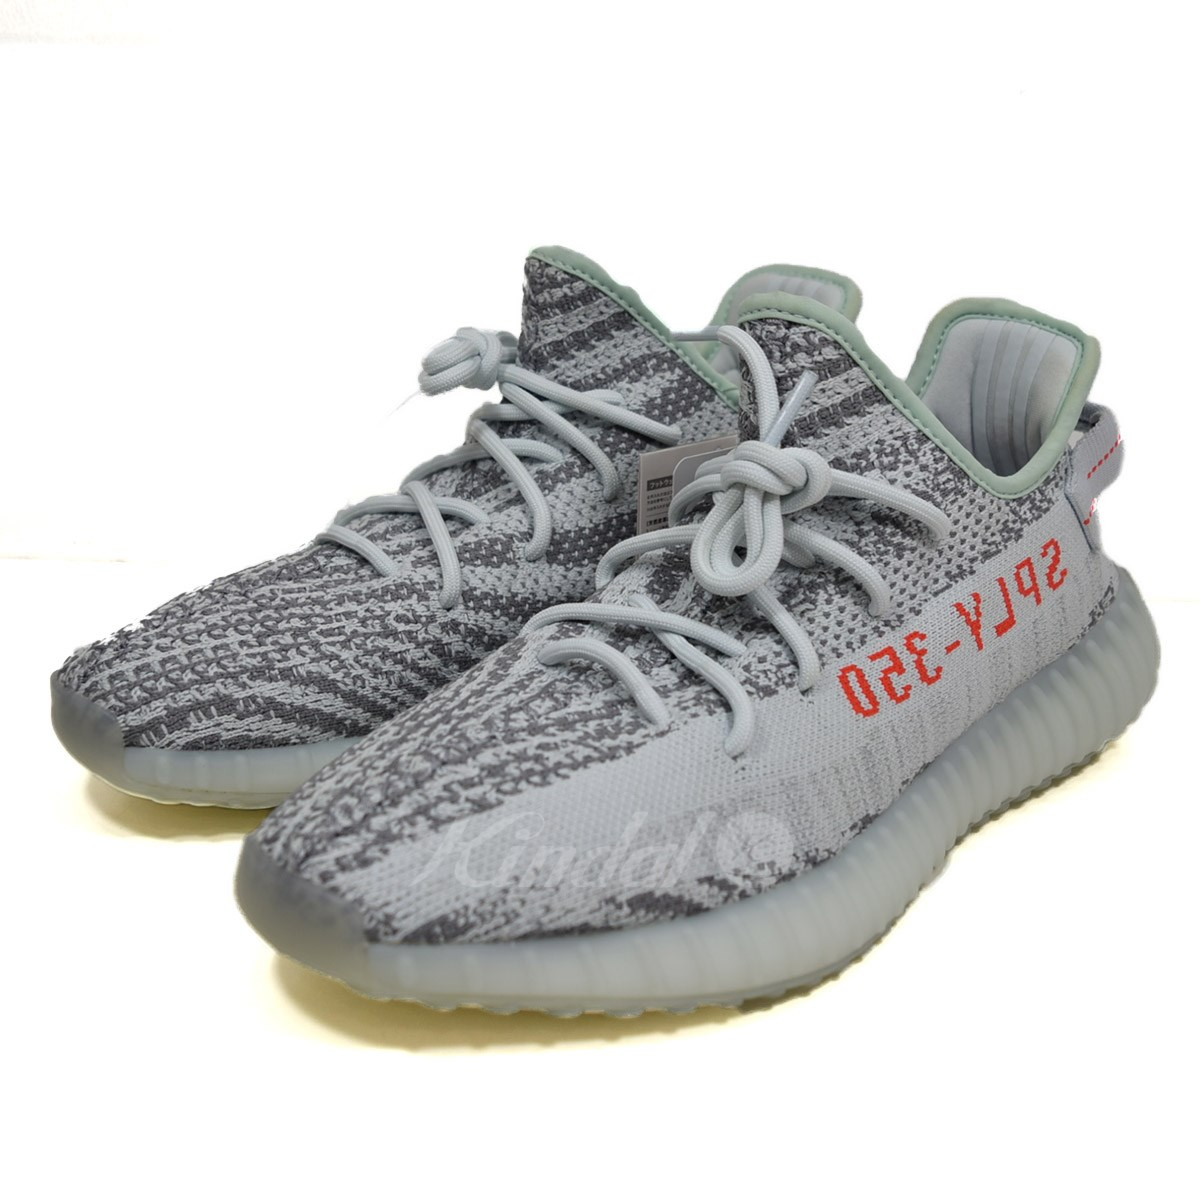 【中古】adidas Originals by Kanye West YEEZY BOOST 350 V2 BLUE TINT B37571 【送料無料】 【000274】 【銅】